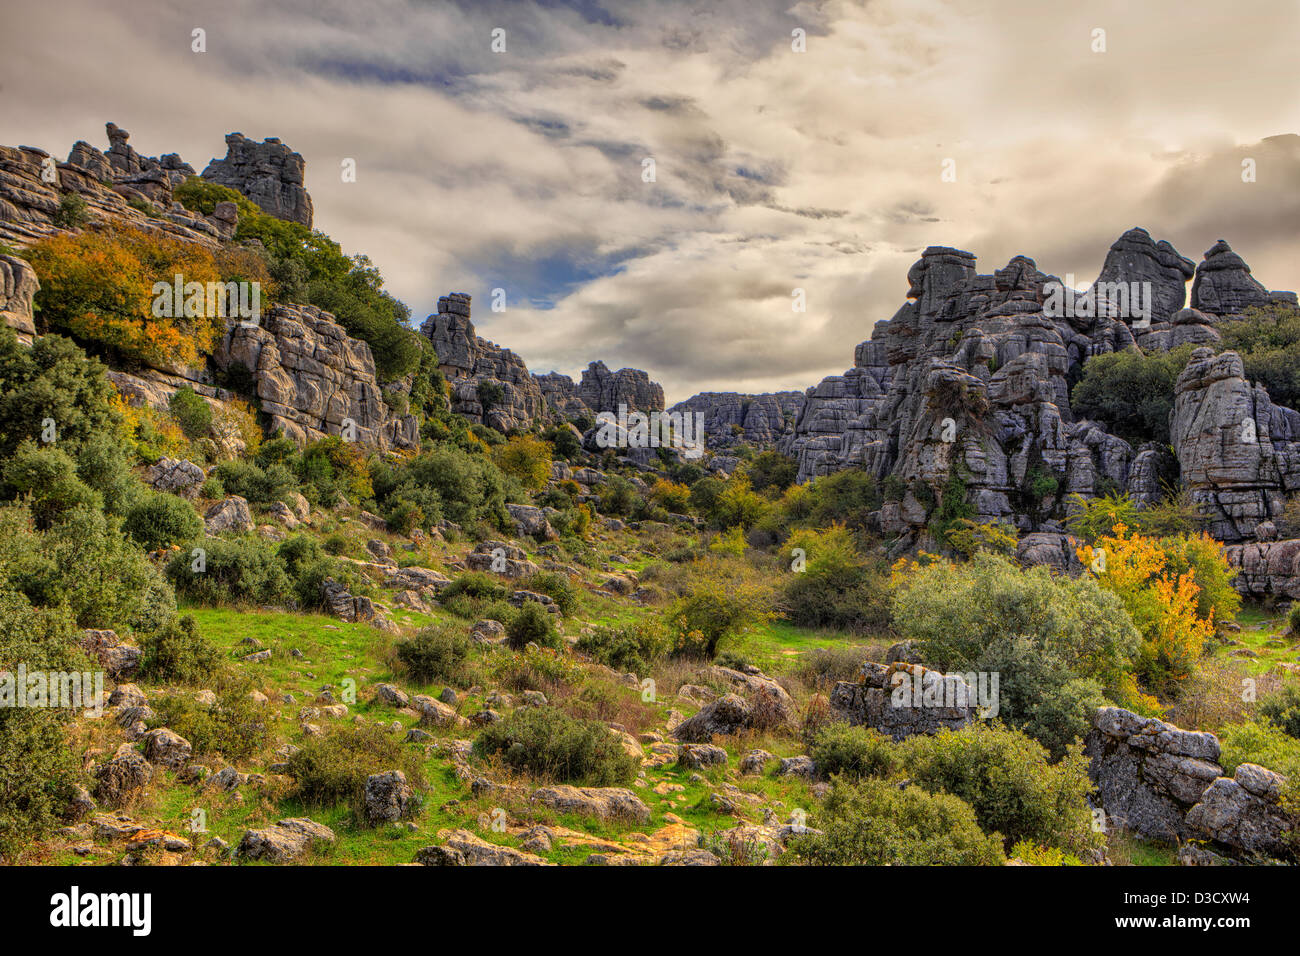 Rock formations  in the Torcal de Antequera, a nature reserve in Malaga, Spain - Stock Image